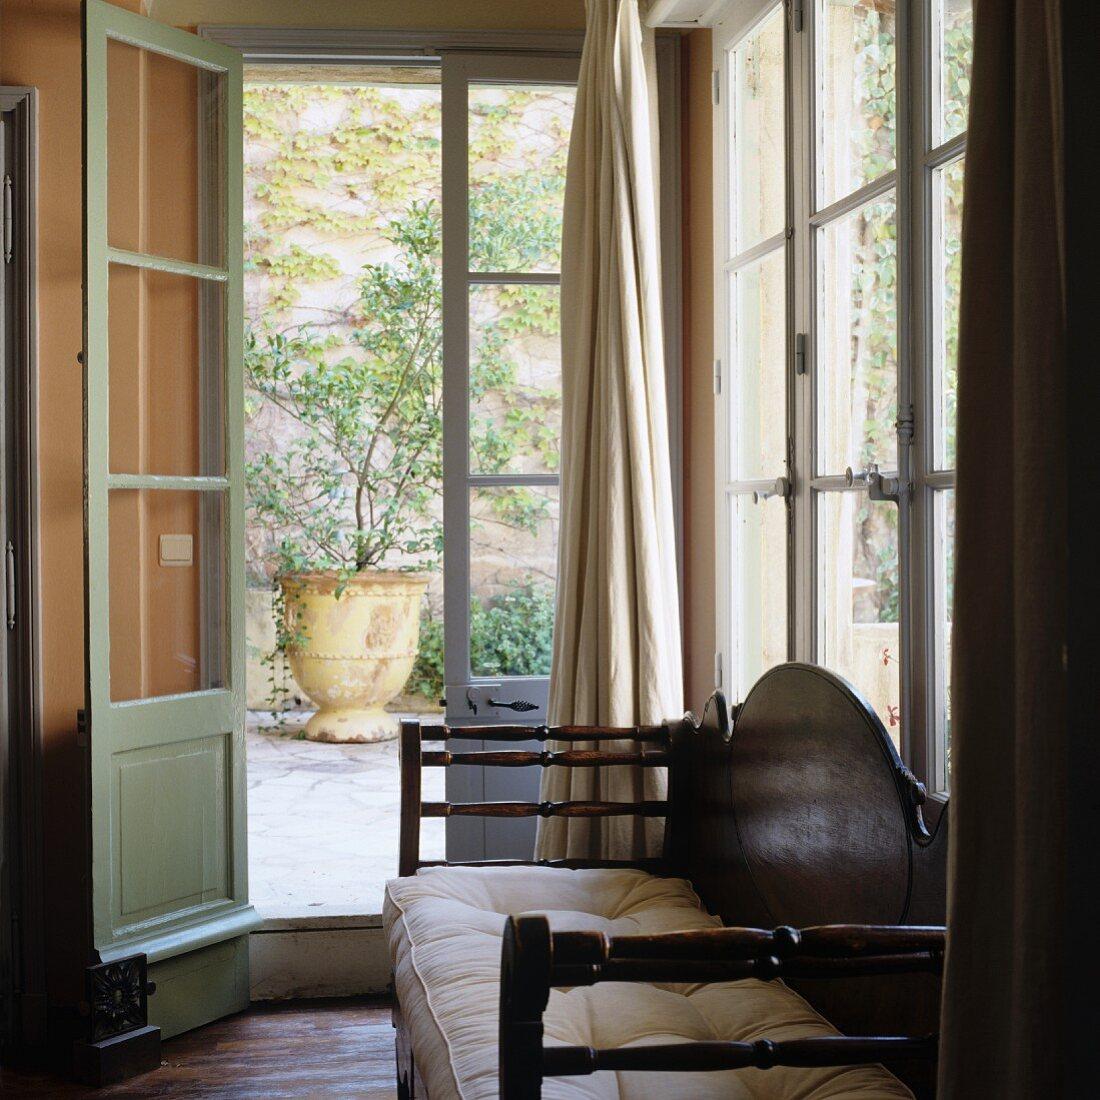 Antique wooden bench with seat cushions in window niche with door leading to Mediterranean terrace